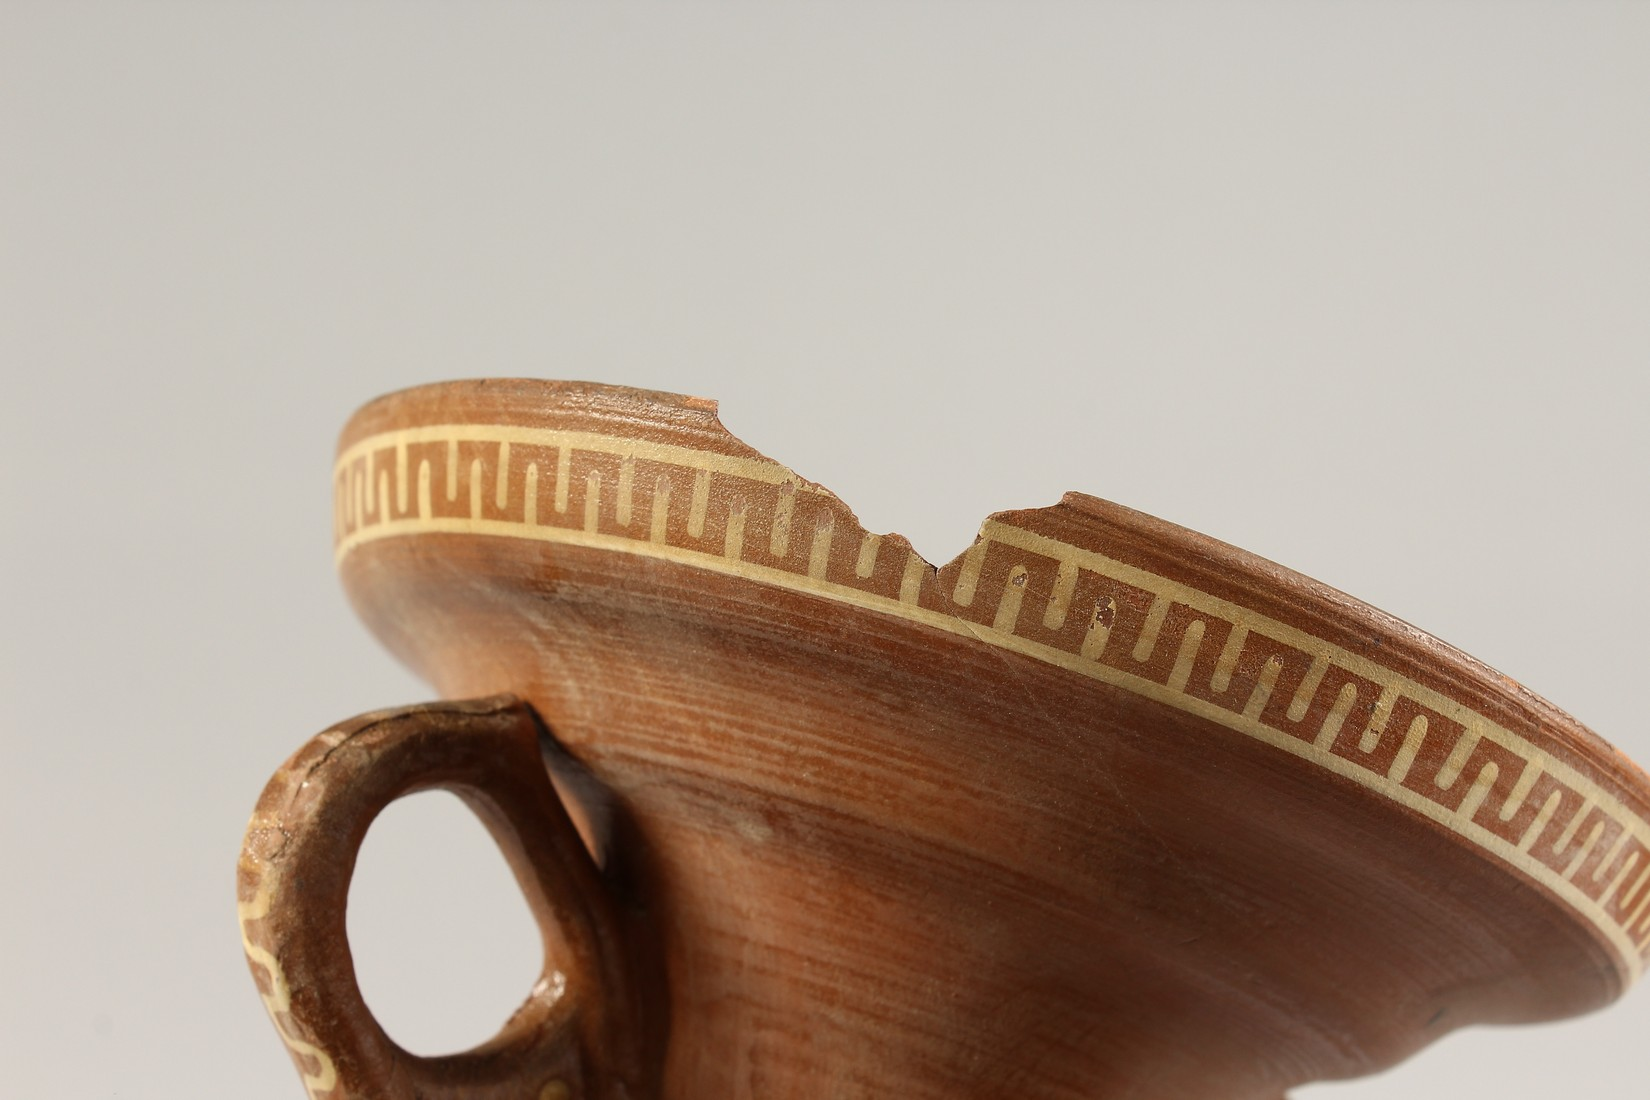 A GRAND TOUR GREEK TWO HANDLED TERRA COTTA VASE 13ins high. - Image 3 of 4